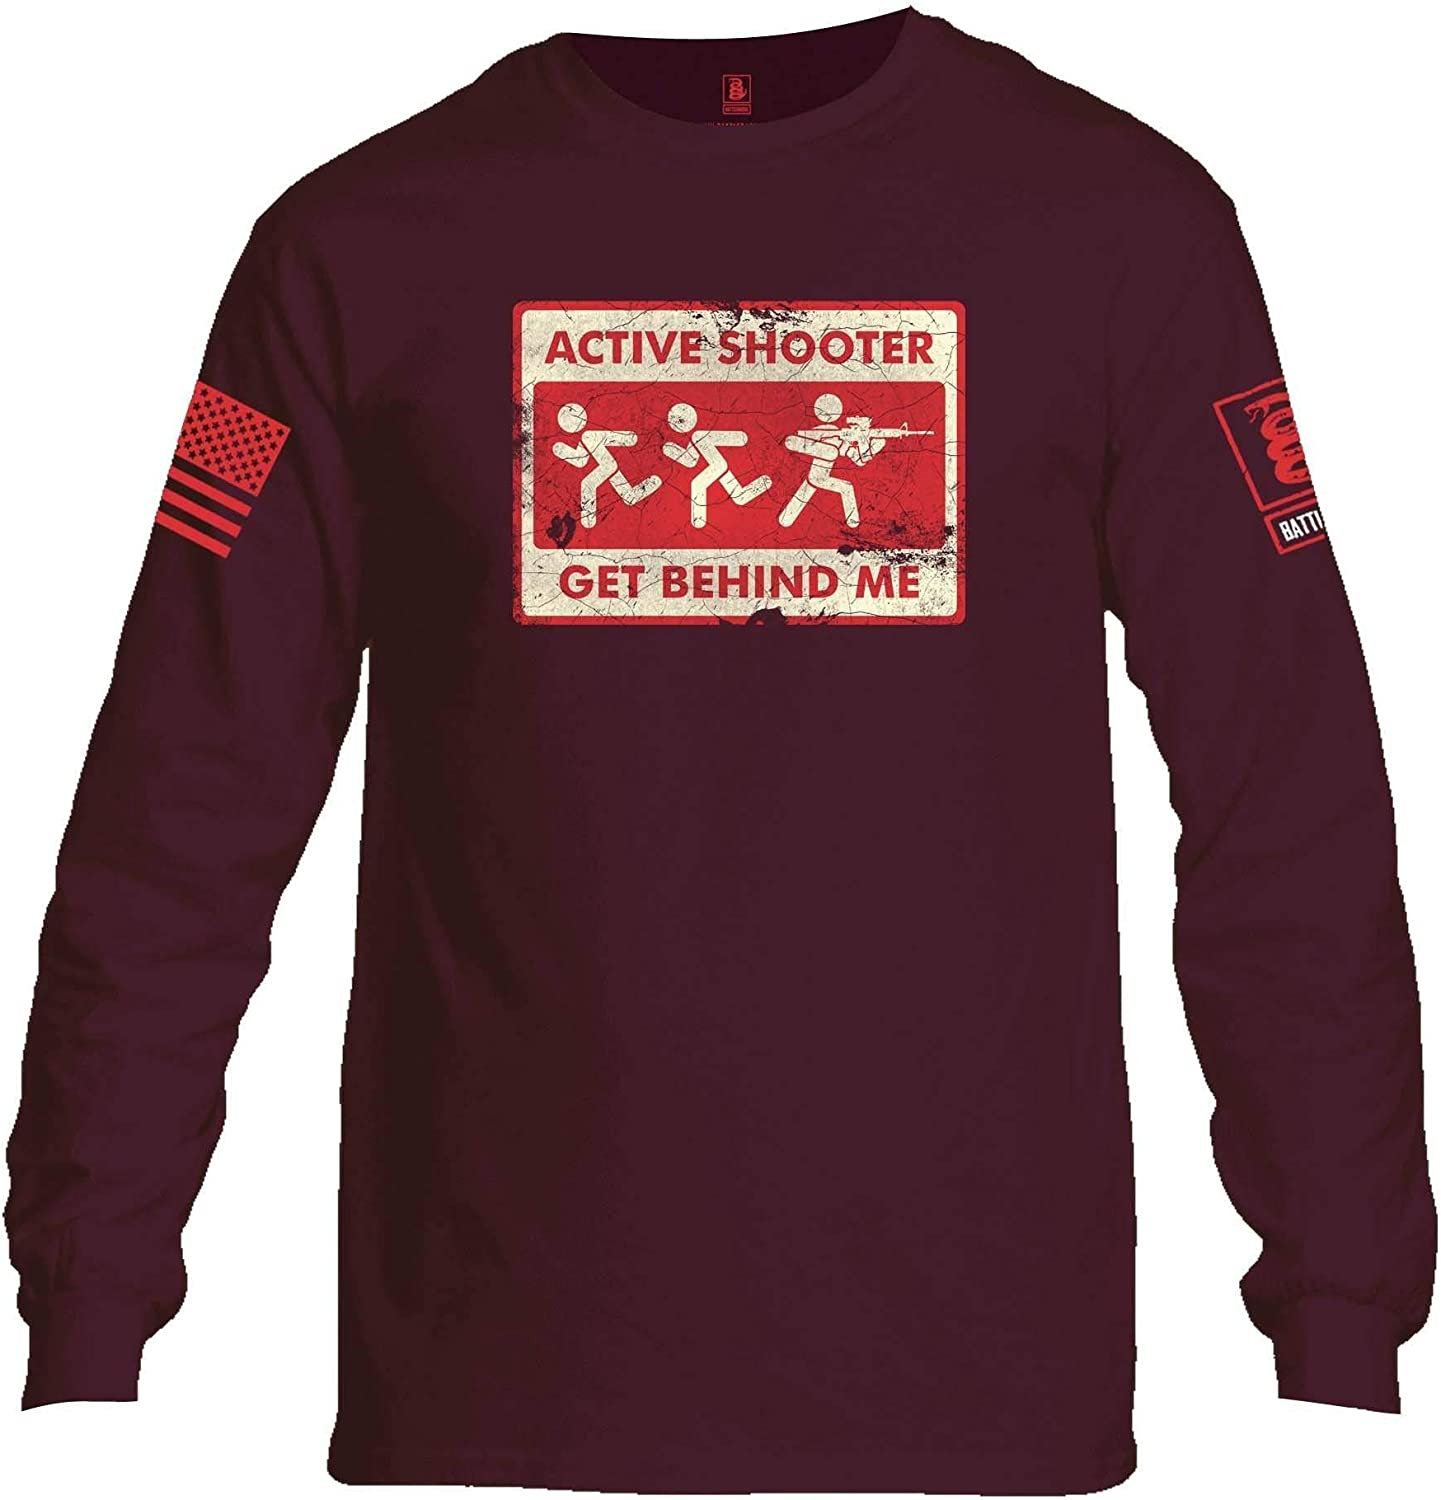 Battleraddle Active Shooter Get Behind Me Red Sleeve Print Mens Cotton Long Sleeve Crew Neck T Shirt